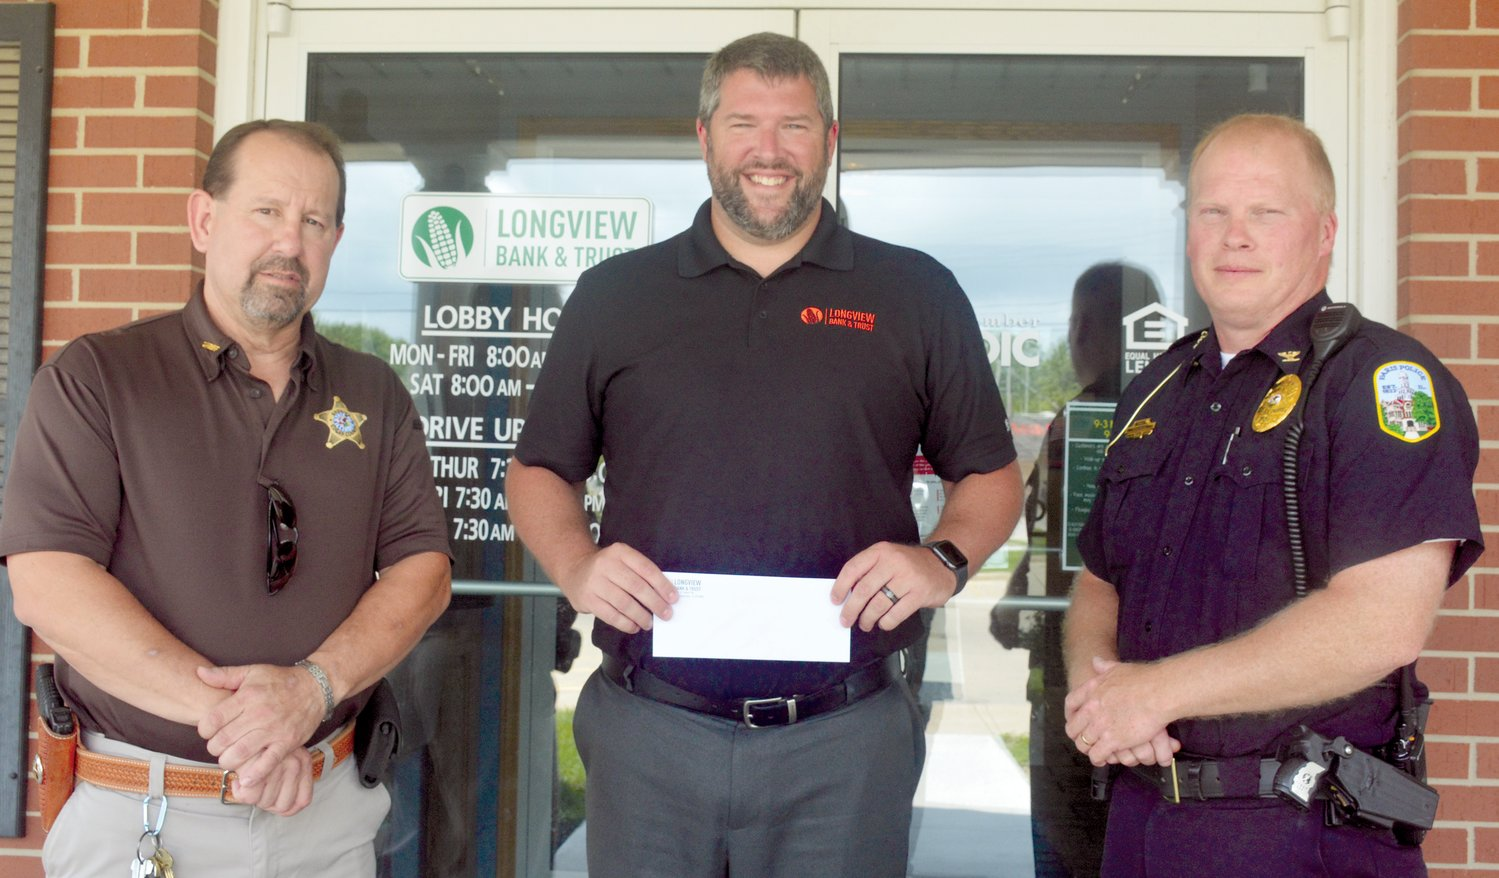 Aaron Damler, center, vice-president and branch manager of Longview Bank in Paris, presents a check to Edgar County Sheriff Jeff Wood, left, and Paris Police Chief Eric Brown, right. The check was in support of a fundraising effort by Friends of Edgar County Law Enforcement to provide better equipment to all county officers.